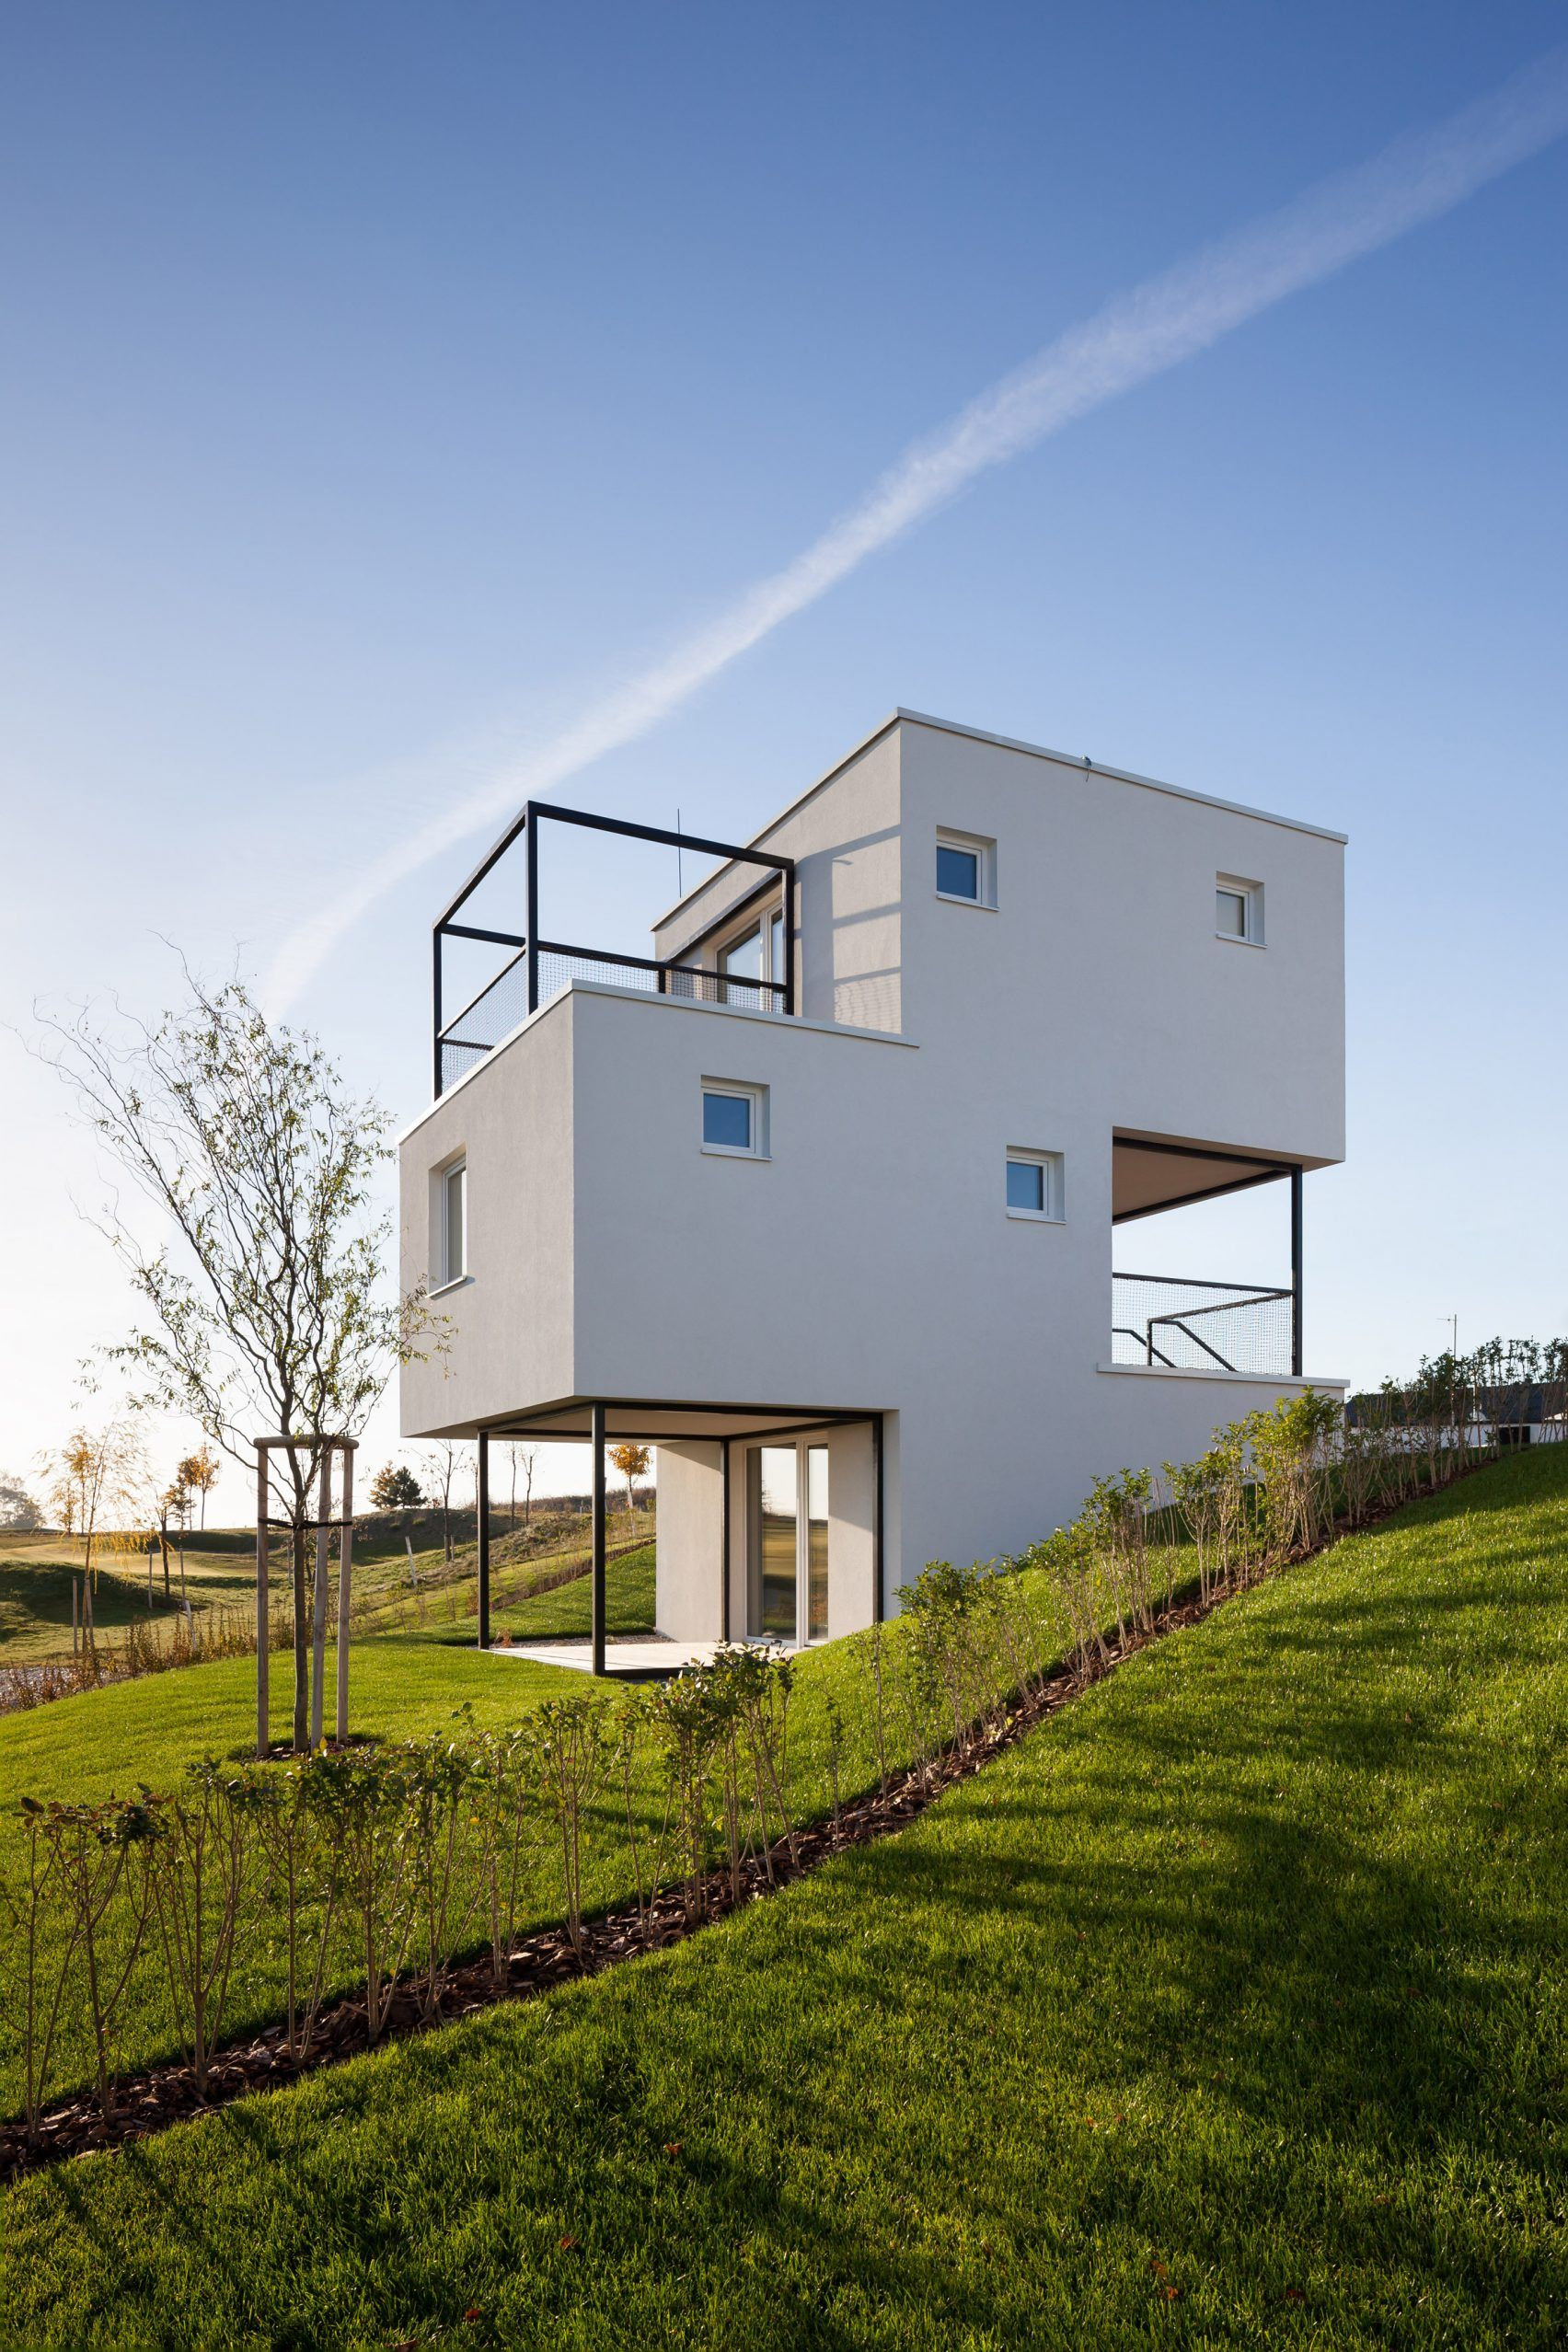 3x3 houses by endorfine architecture modern small house design rh pinterest com